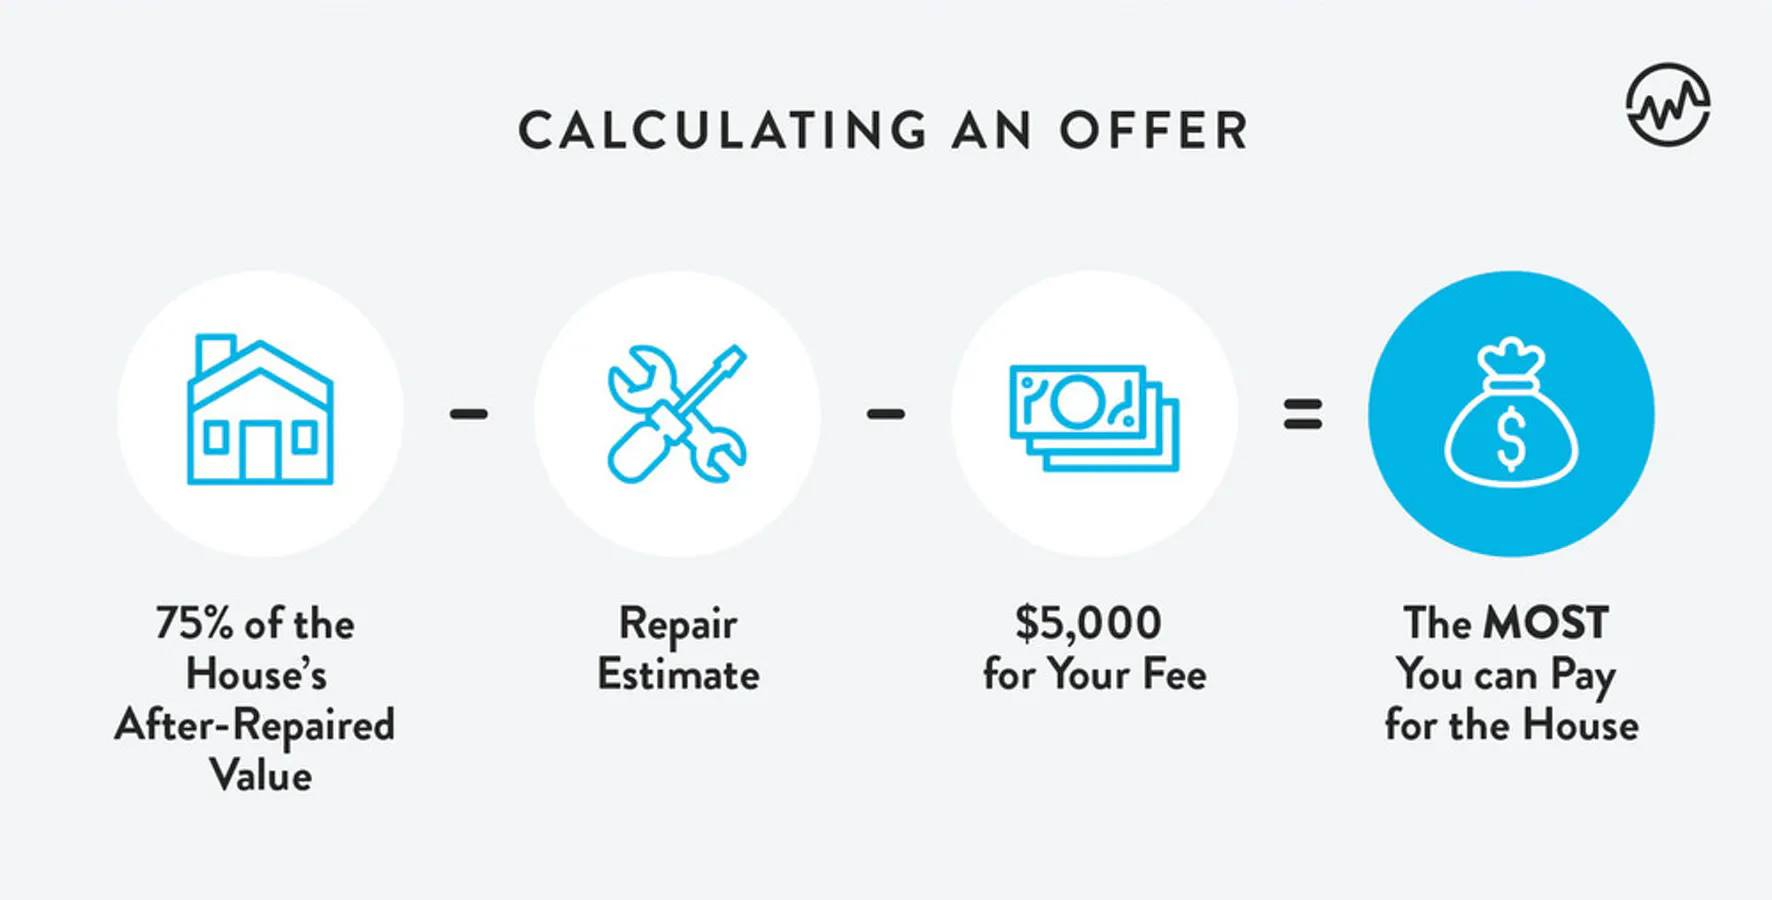 How to calculate the offer for wholesale deals in real estate